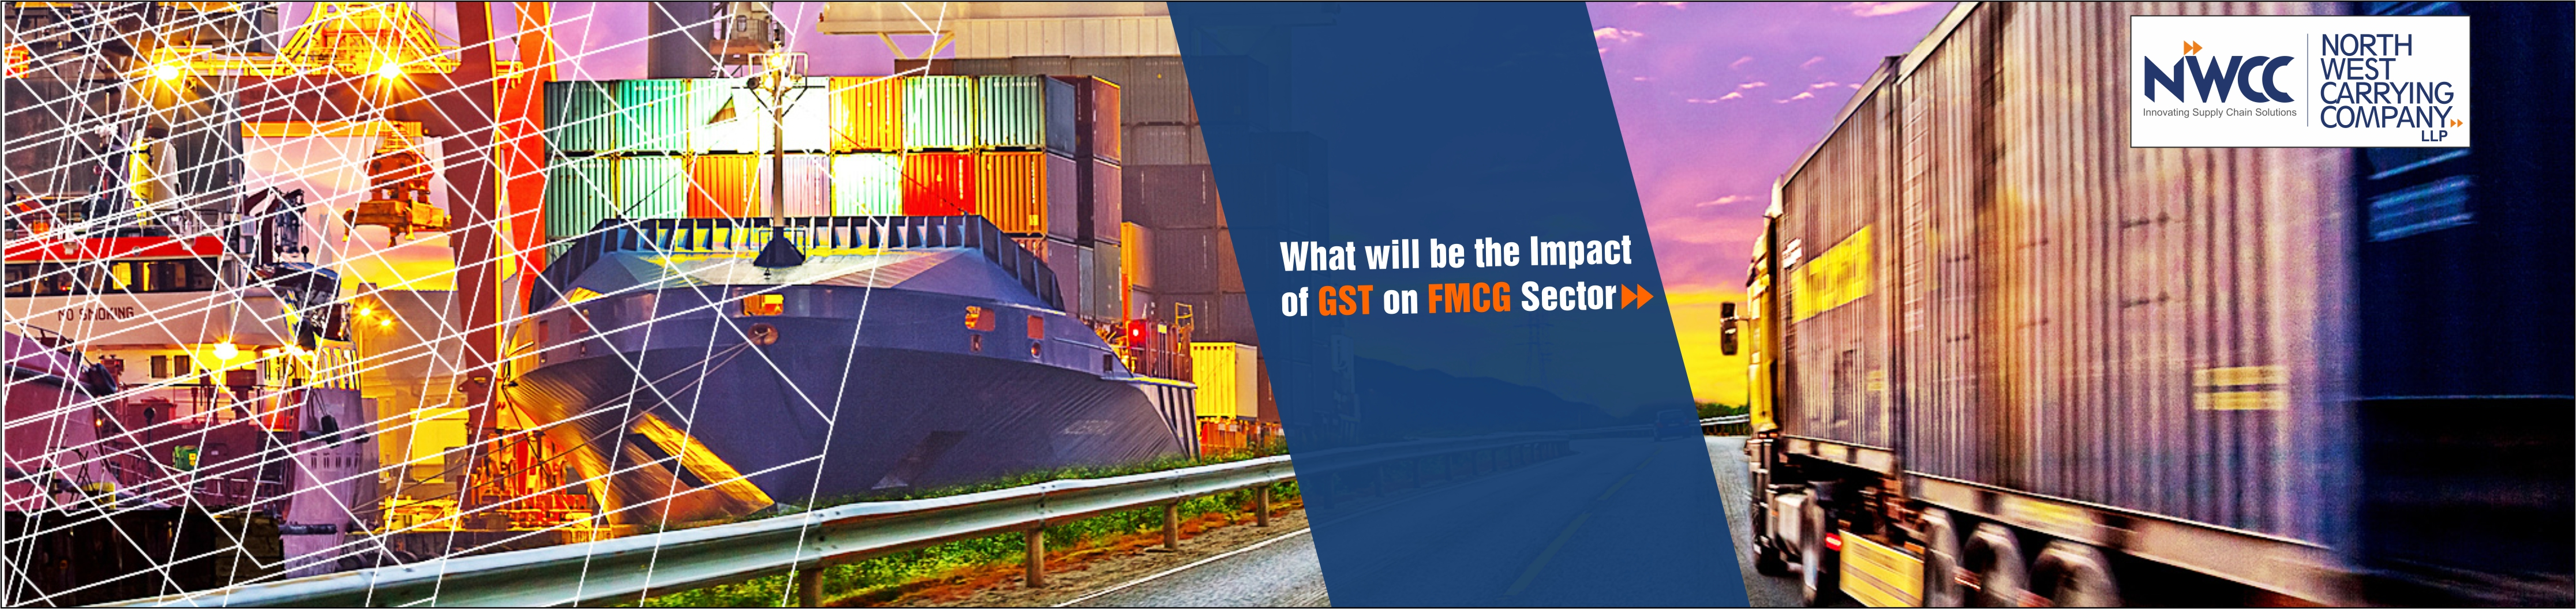 impact of fmcg sector on india gdp How will gst impact india's fmcg sector fmcg sector is  contributor to the  indian economy with the total size of market exceeding usd 13 billion.